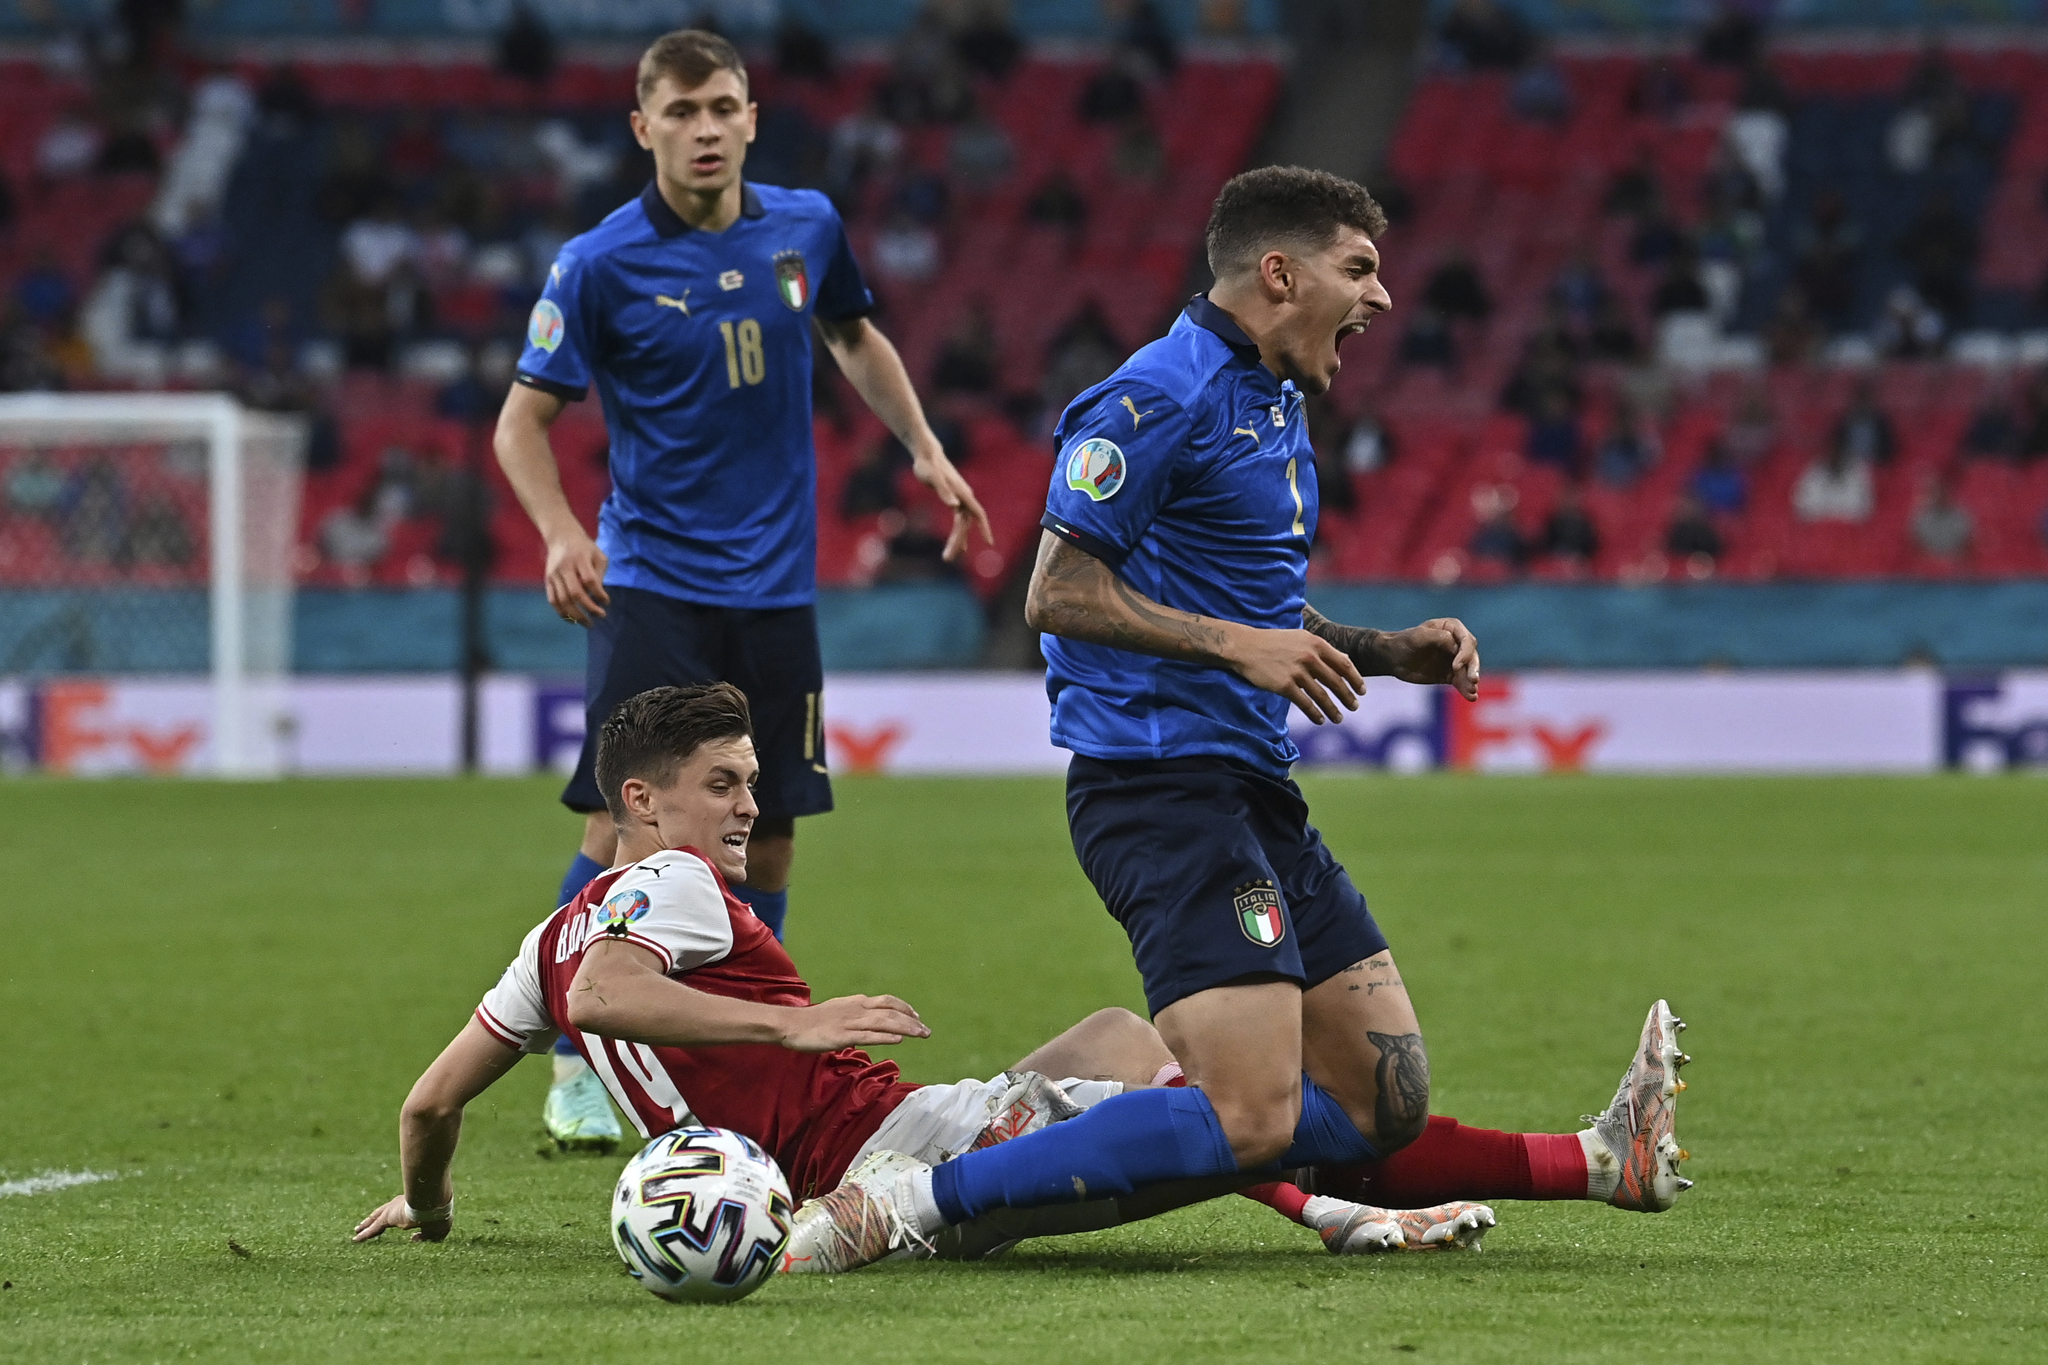 Giovanni Di Lorenzo is challenged by Austria's Christoph Baumgartner